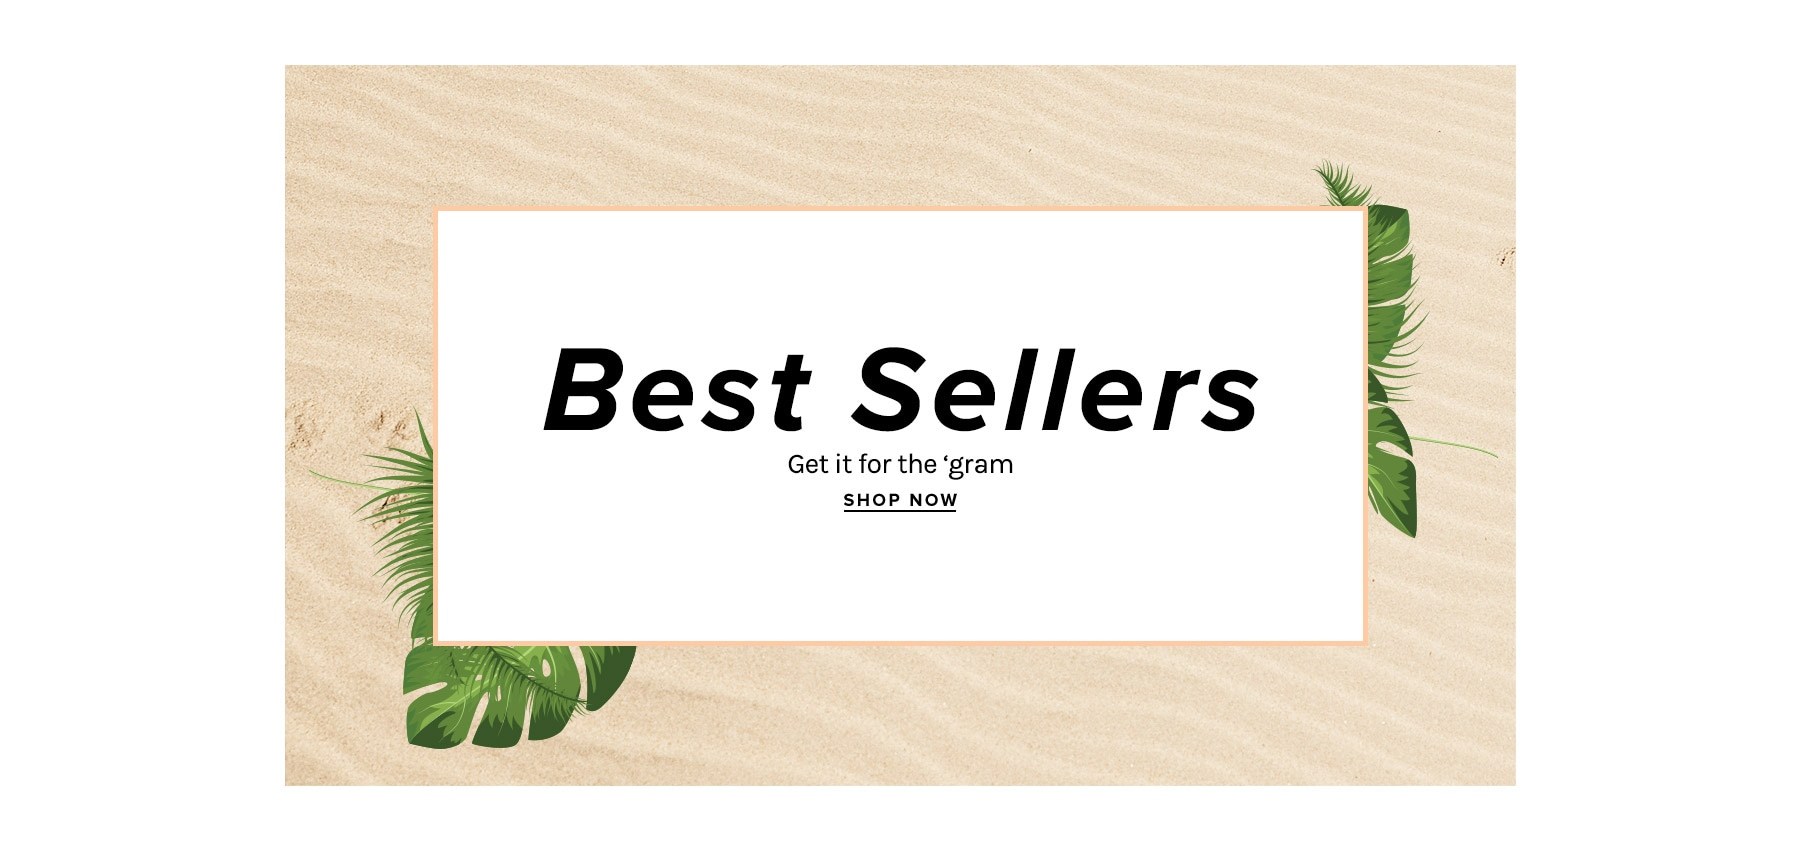 Best Sellers. Get it for the 'gram. Shop Now.